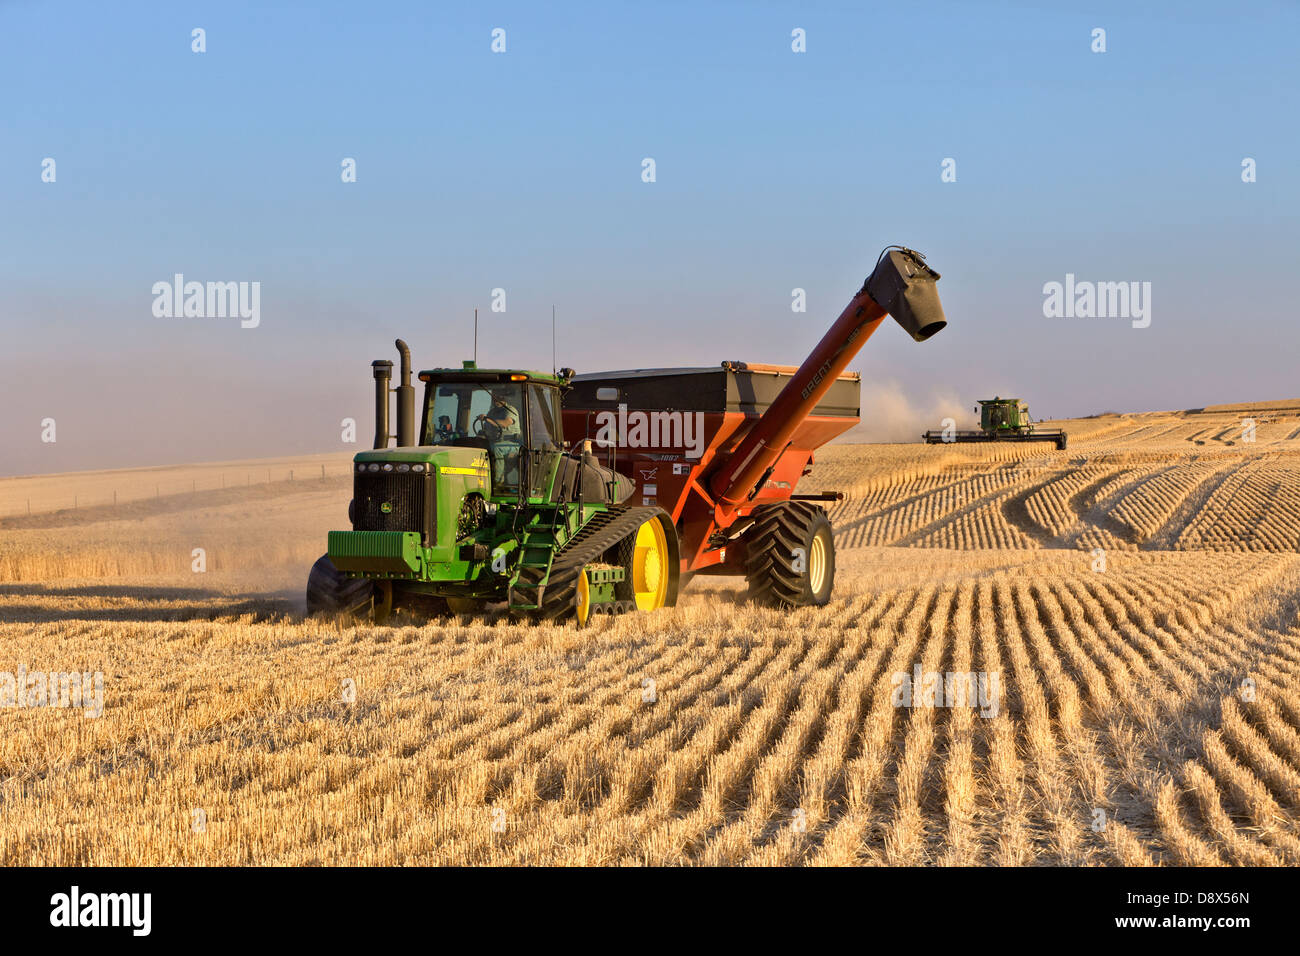 John Deere Tractor pulling Brent Bank Out Wagon, wheat harvest. - Stock Image